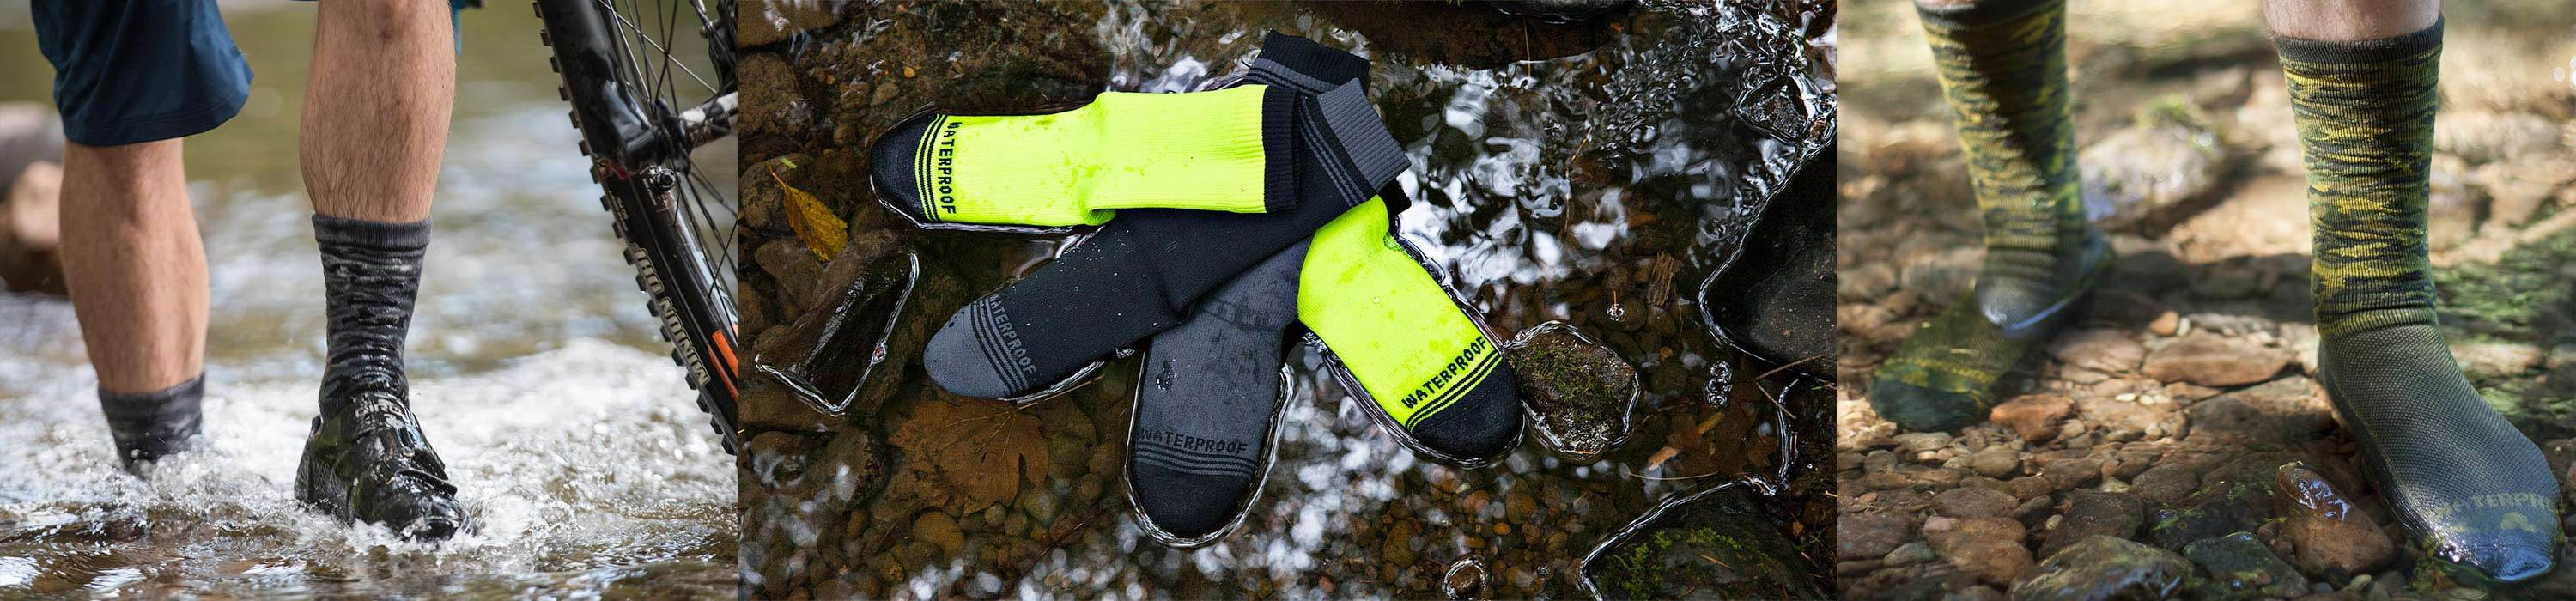 Waterproof Socks multi-sport options